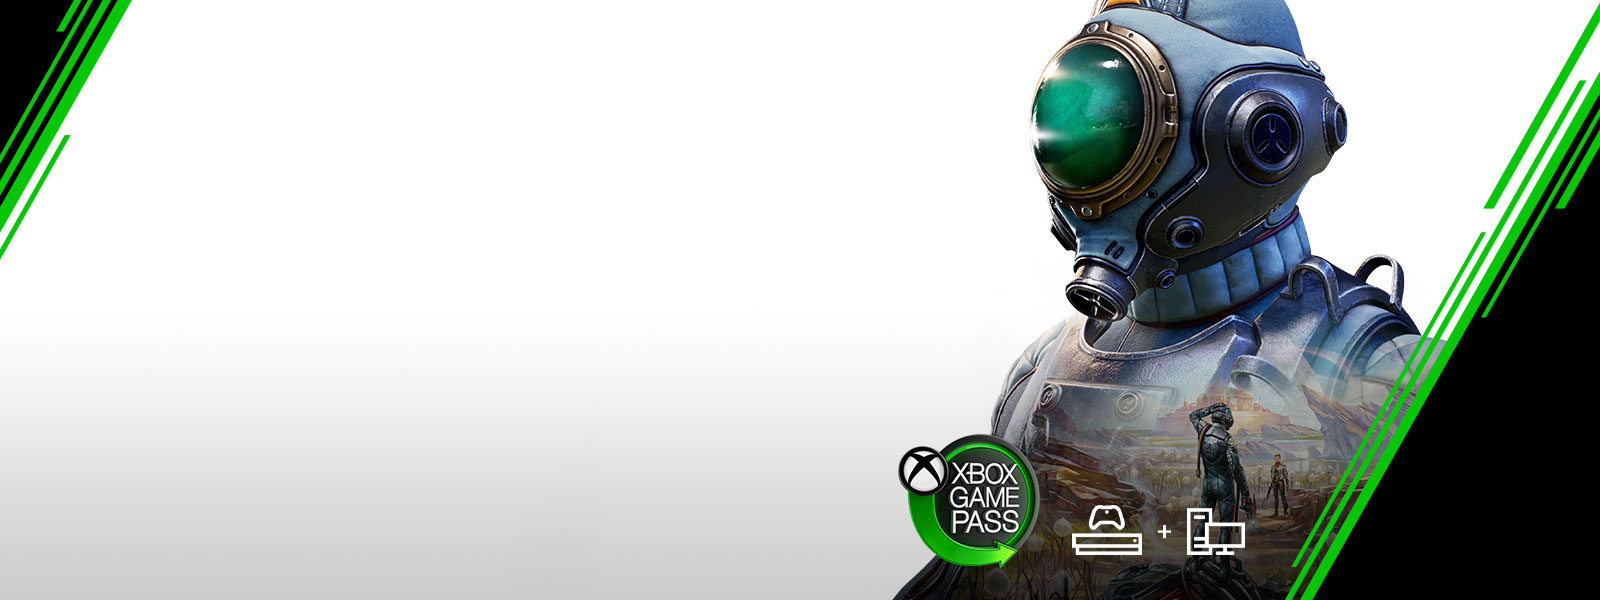 Xbox Game Pass logo, Man in a spacesuit with game art showing over his chest